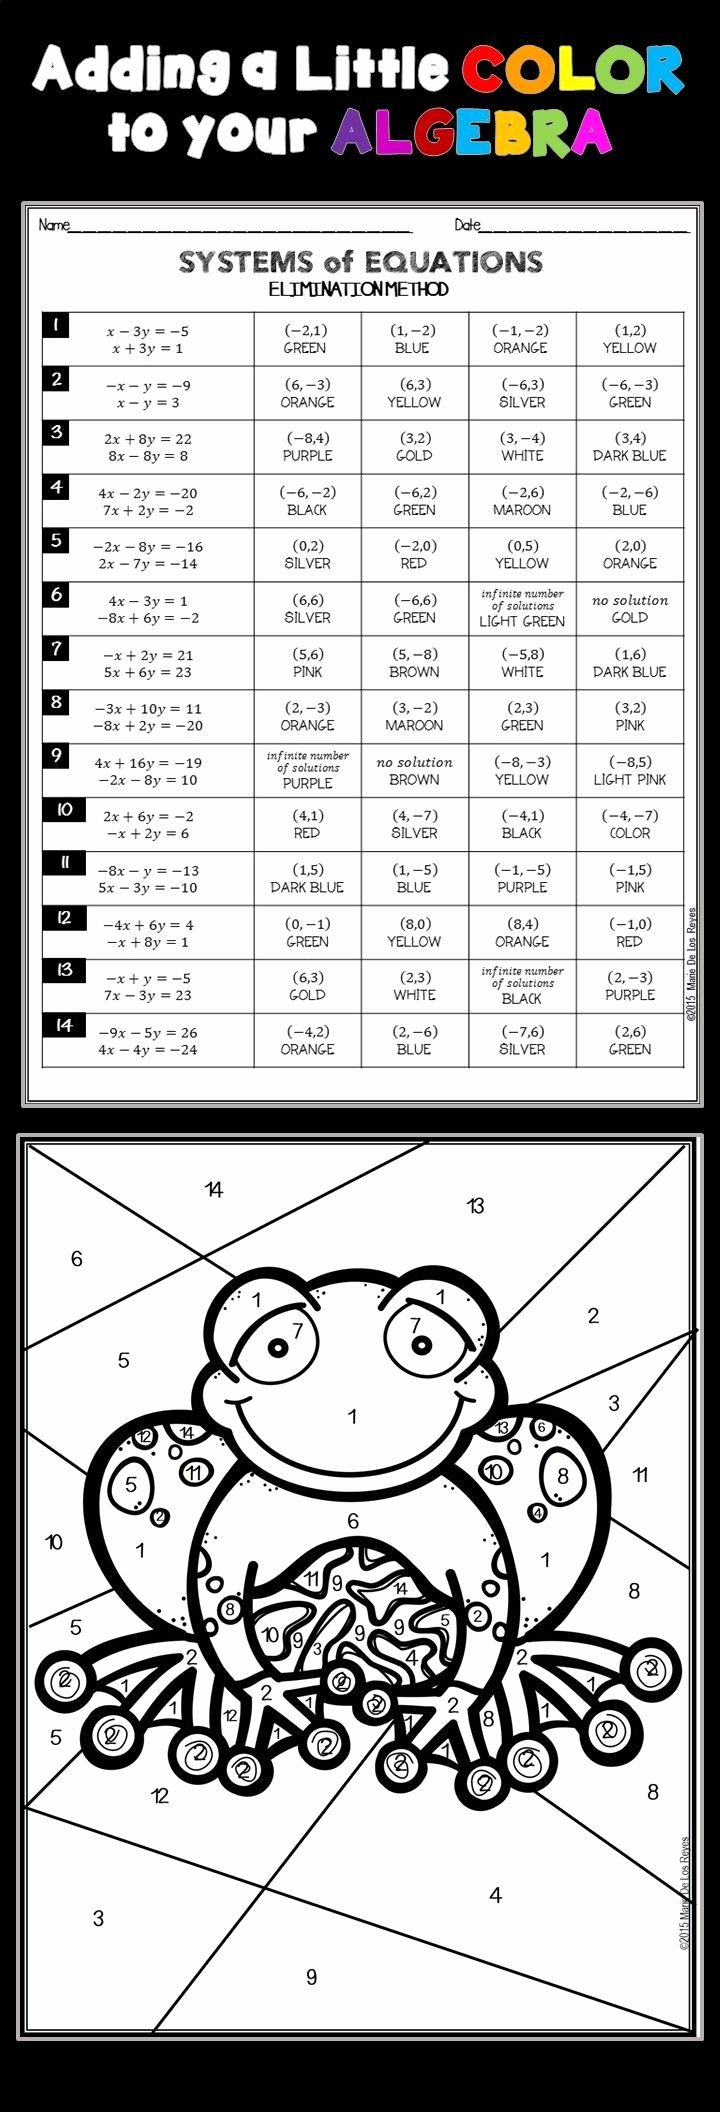 Systems Of Equations Worksheet Unique solving Systems Of Equations Elimination Method Activity